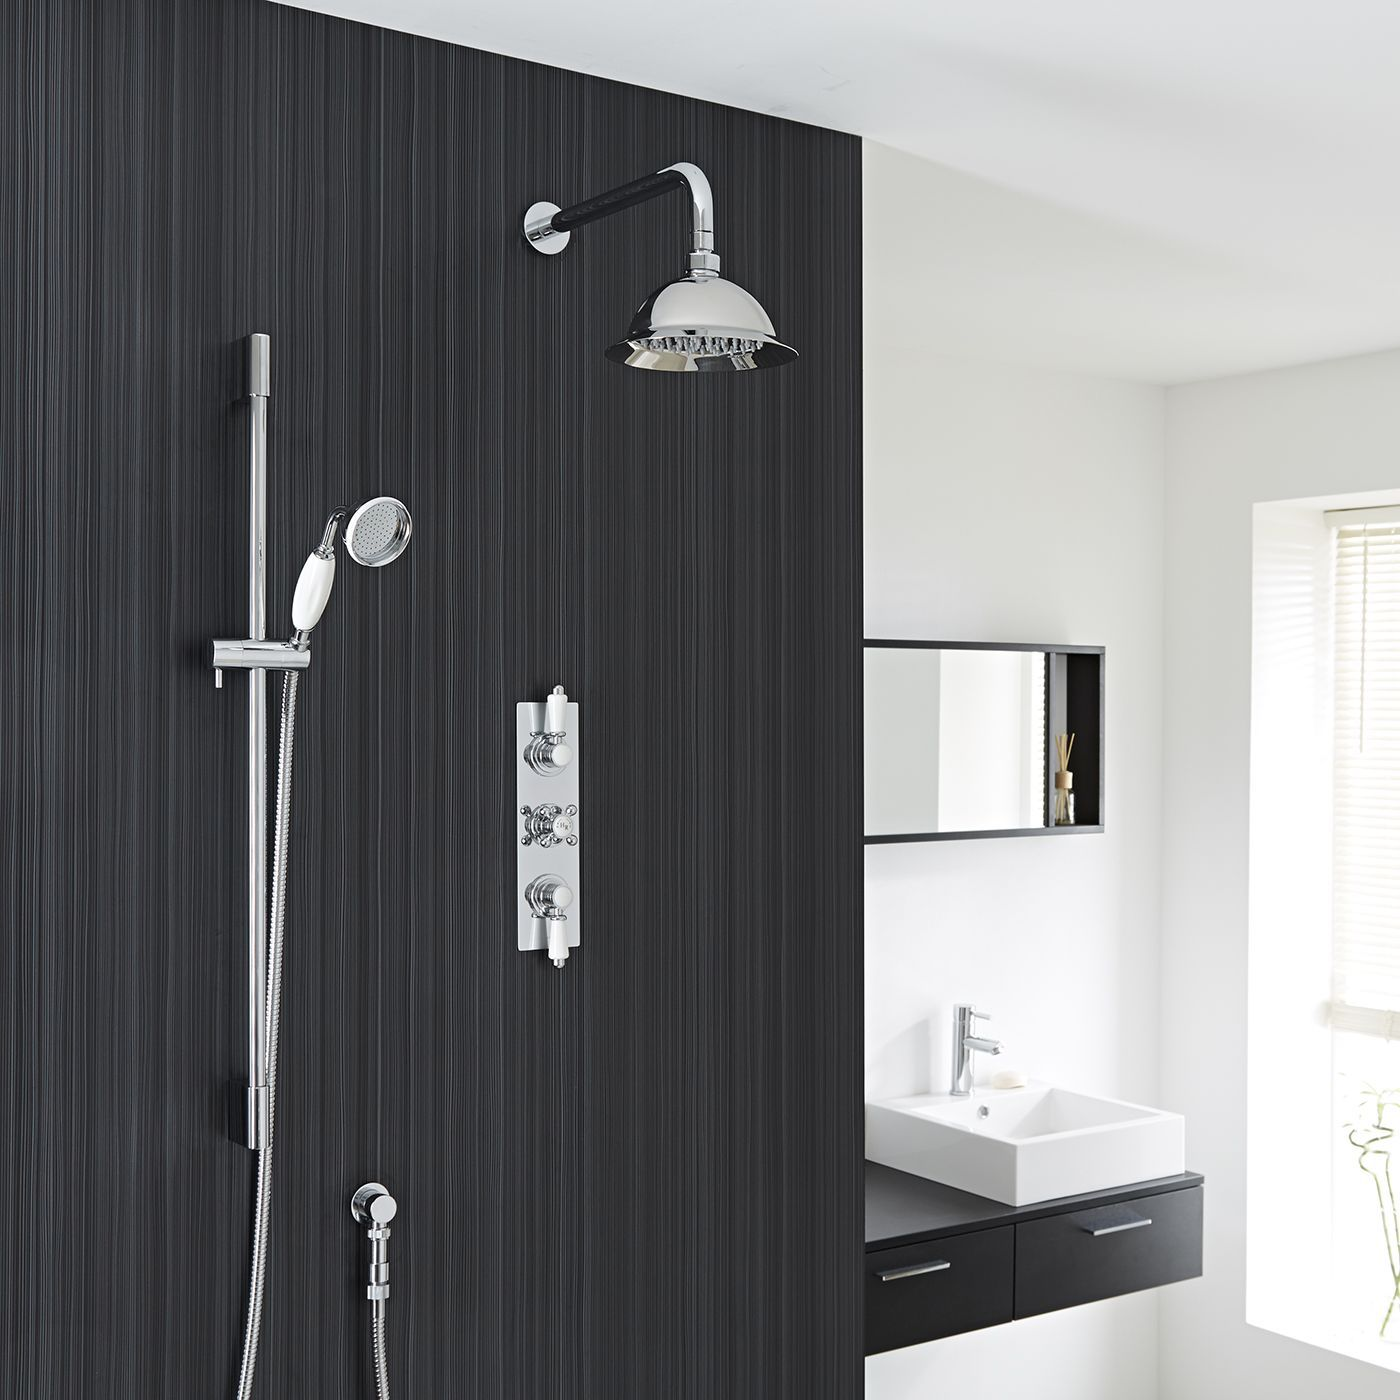 "Traditional Thermostatic Shower System with 8"" Rose & Handshower"